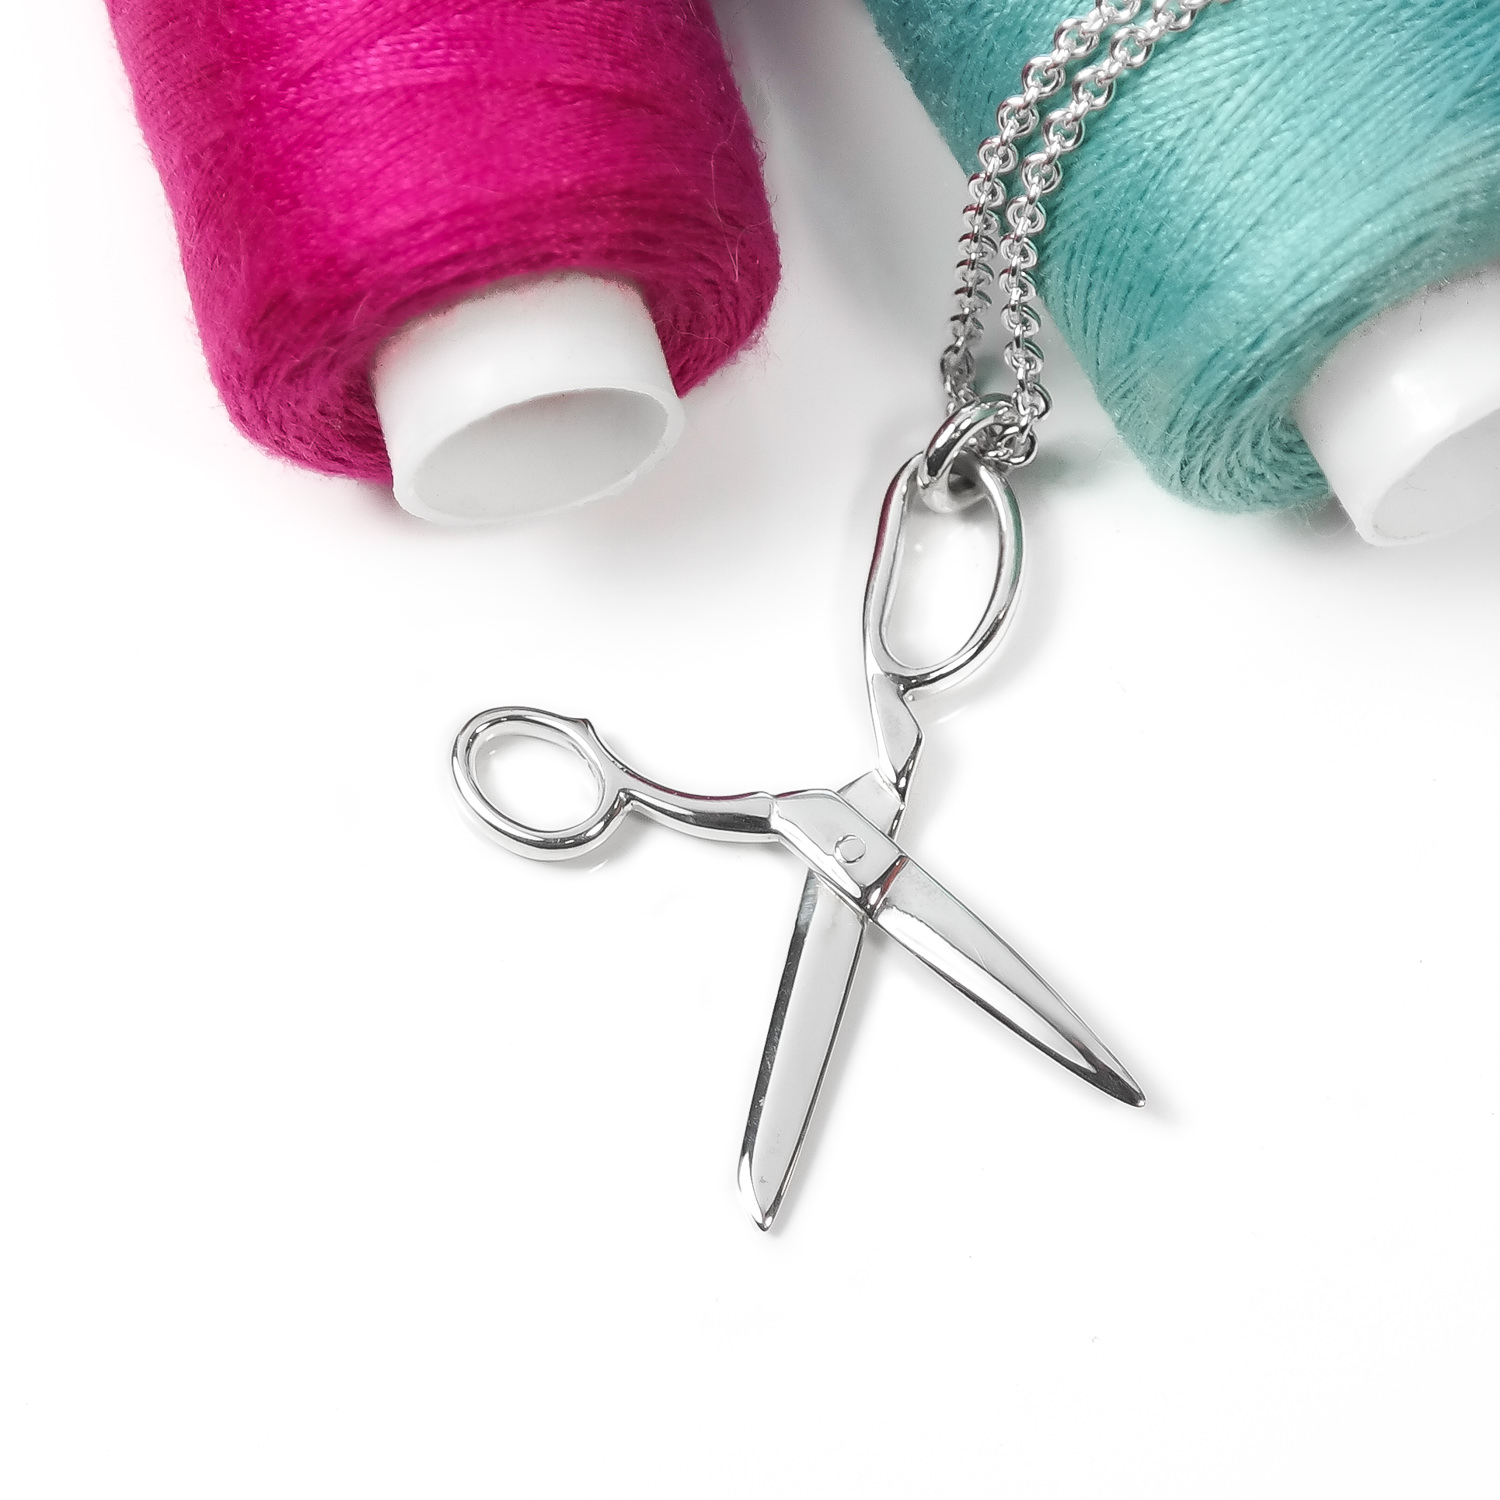 Solid-eco-gold-tailors-shears-necklace-handmade-in-london-2.JPG